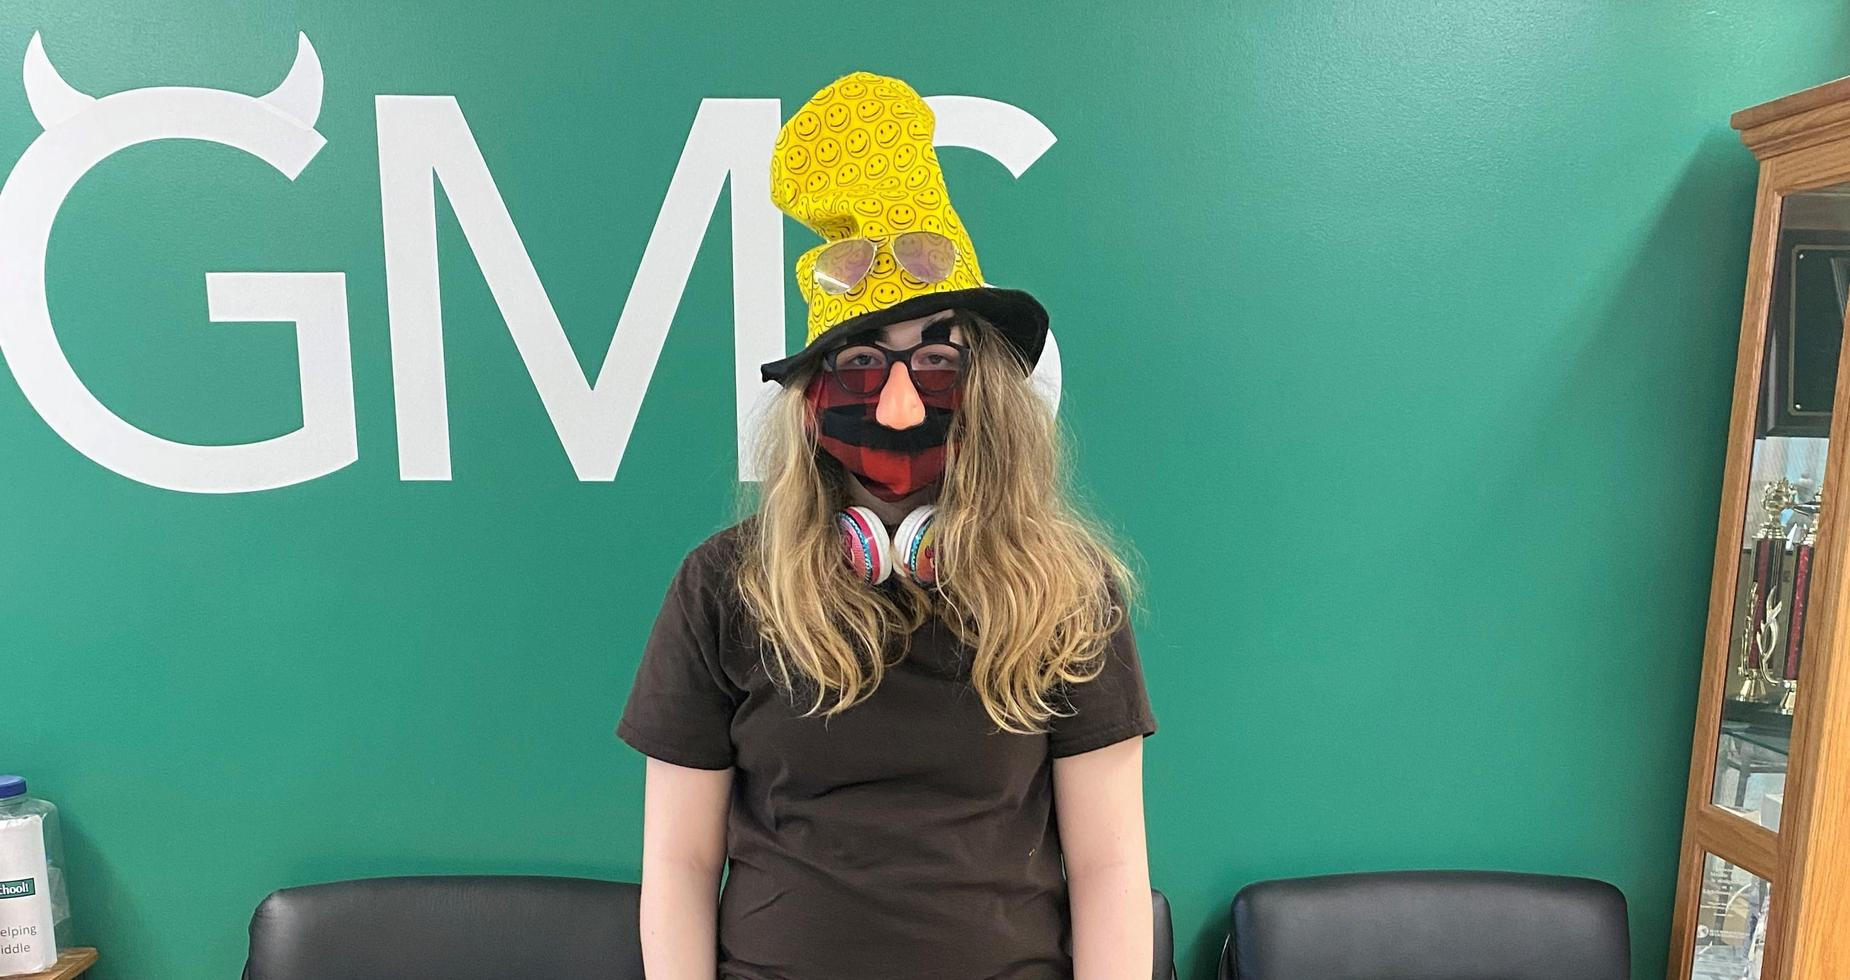 a picture of a student dressed up for Read Across America